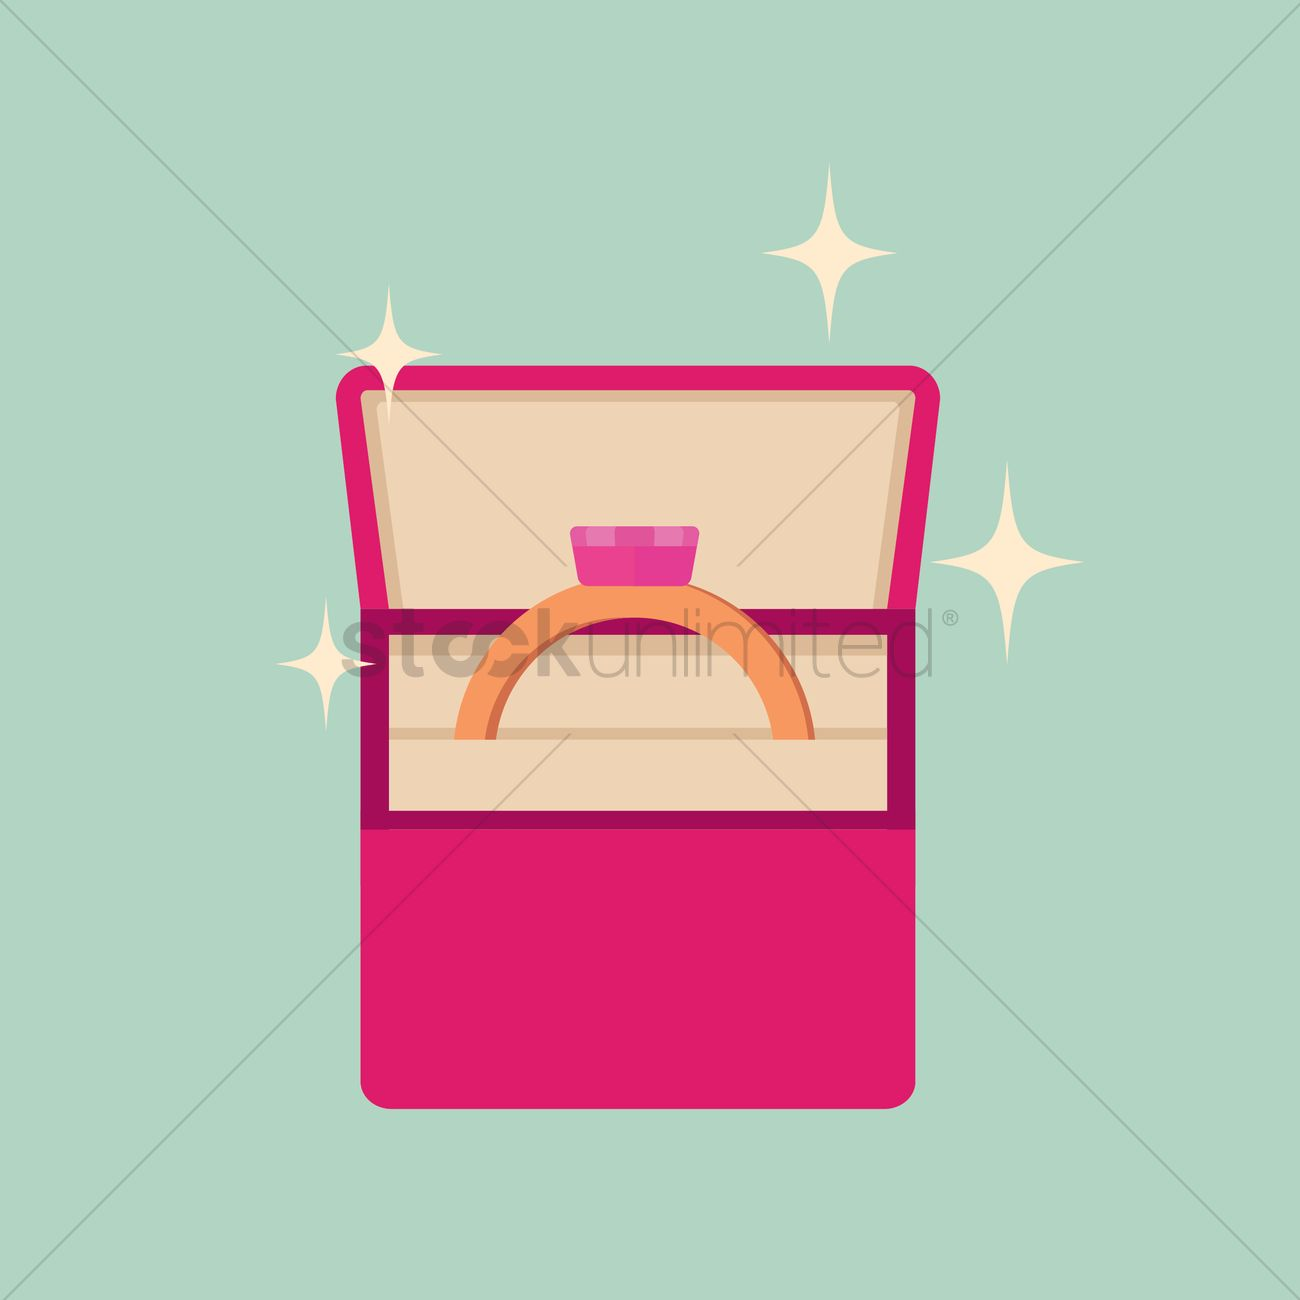 Wedding ring box Vector Image - 1389904 | StockUnlimited